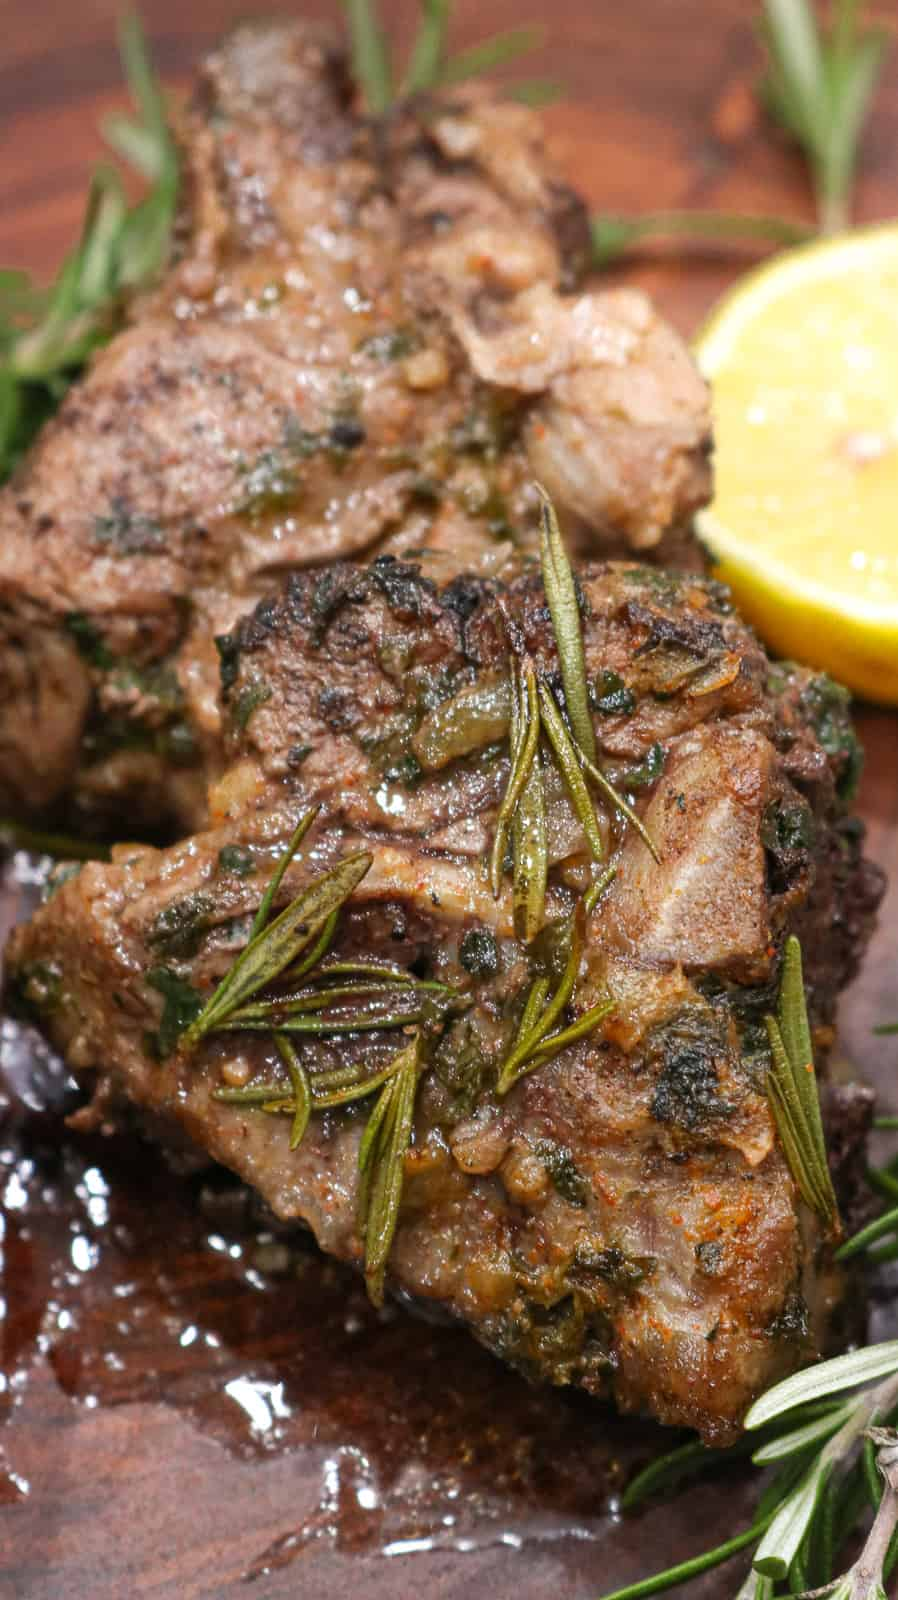 Baked lamb chops on wooden board topped with rosemary